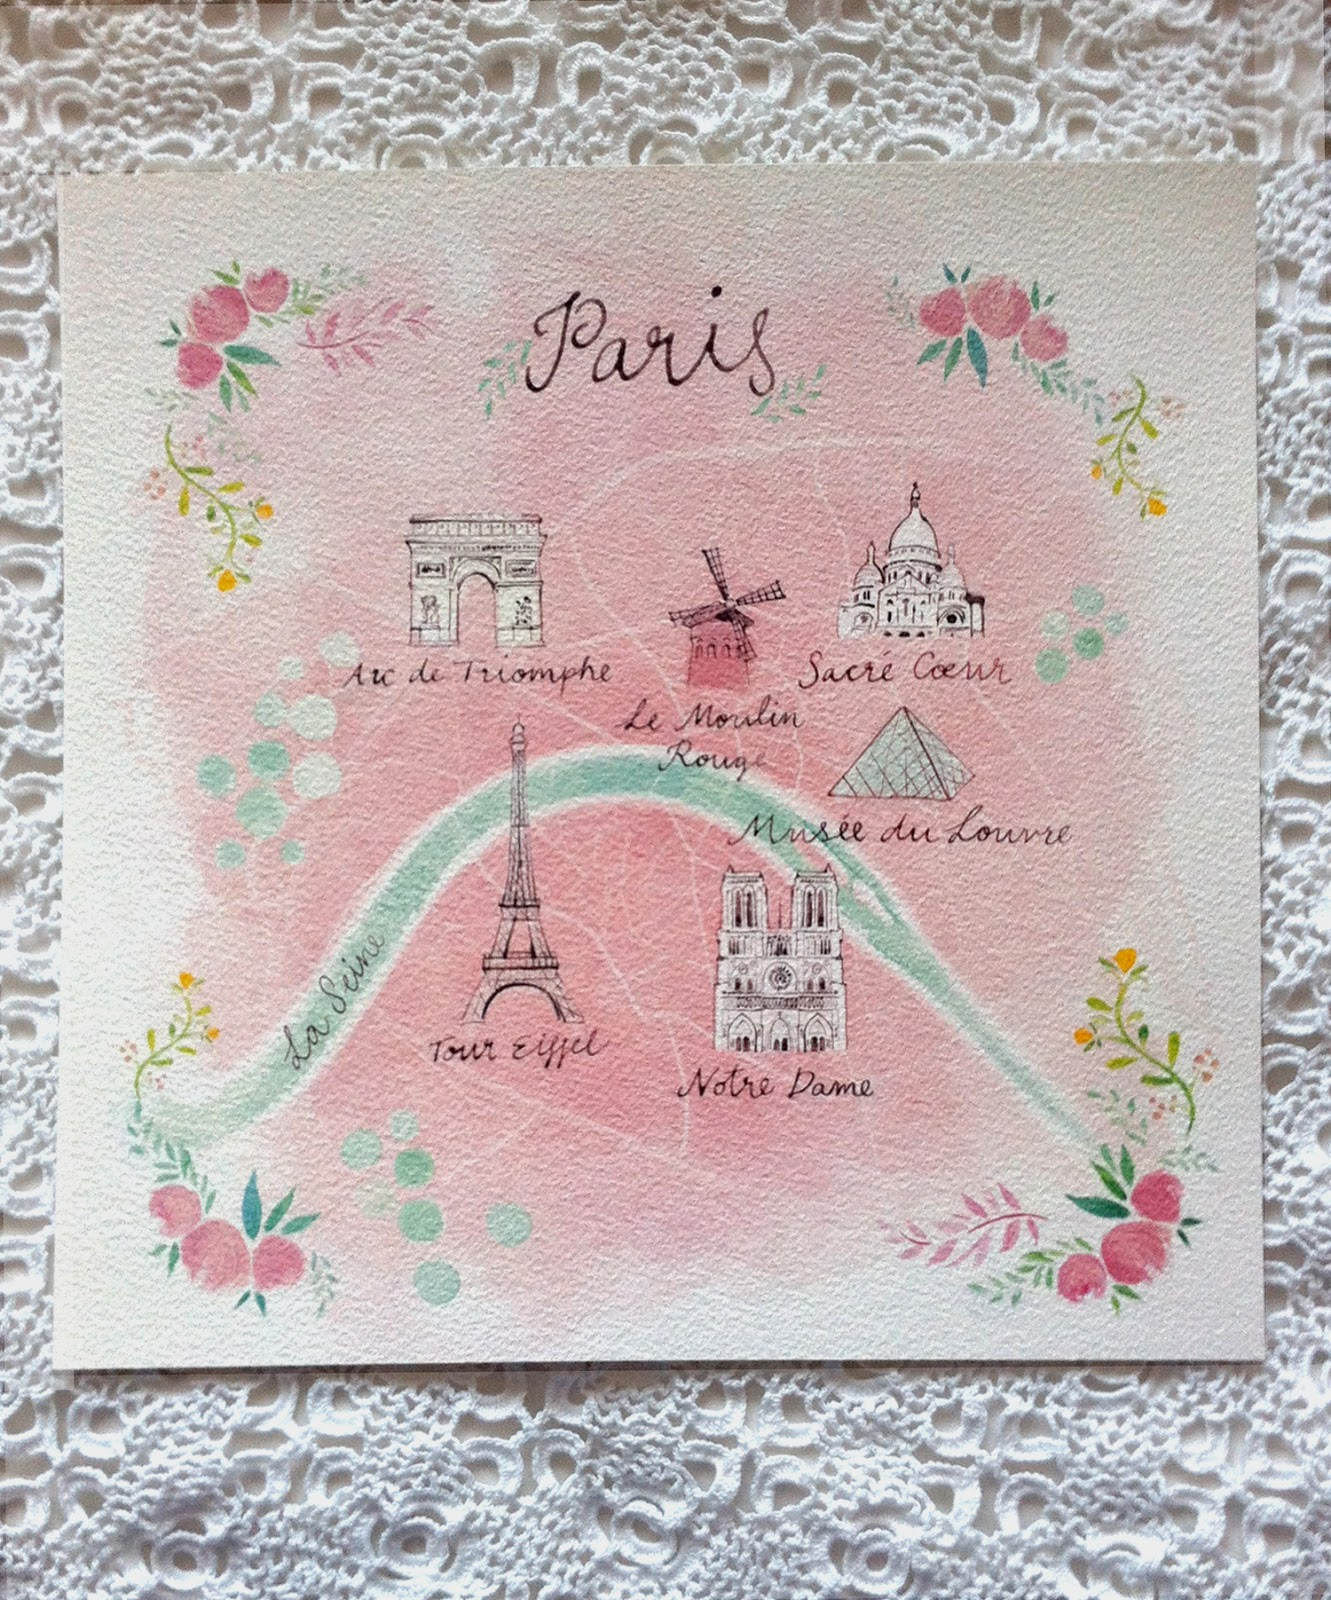 Paper Doll: Illustrated map of Paris on photography of paris, high resolution map of paris, simplified map of paris, fun map of paris, highlighted map of paris, religion map of paris, english map of paris, watercolor of paris, large map of paris, travel map of paris, white map of paris, detailed street map of paris, printable map of paris, outlined map of paris, antique map of paris, color map of paris, illustration of paris, interactive map of paris, history map of paris, sports map of paris,